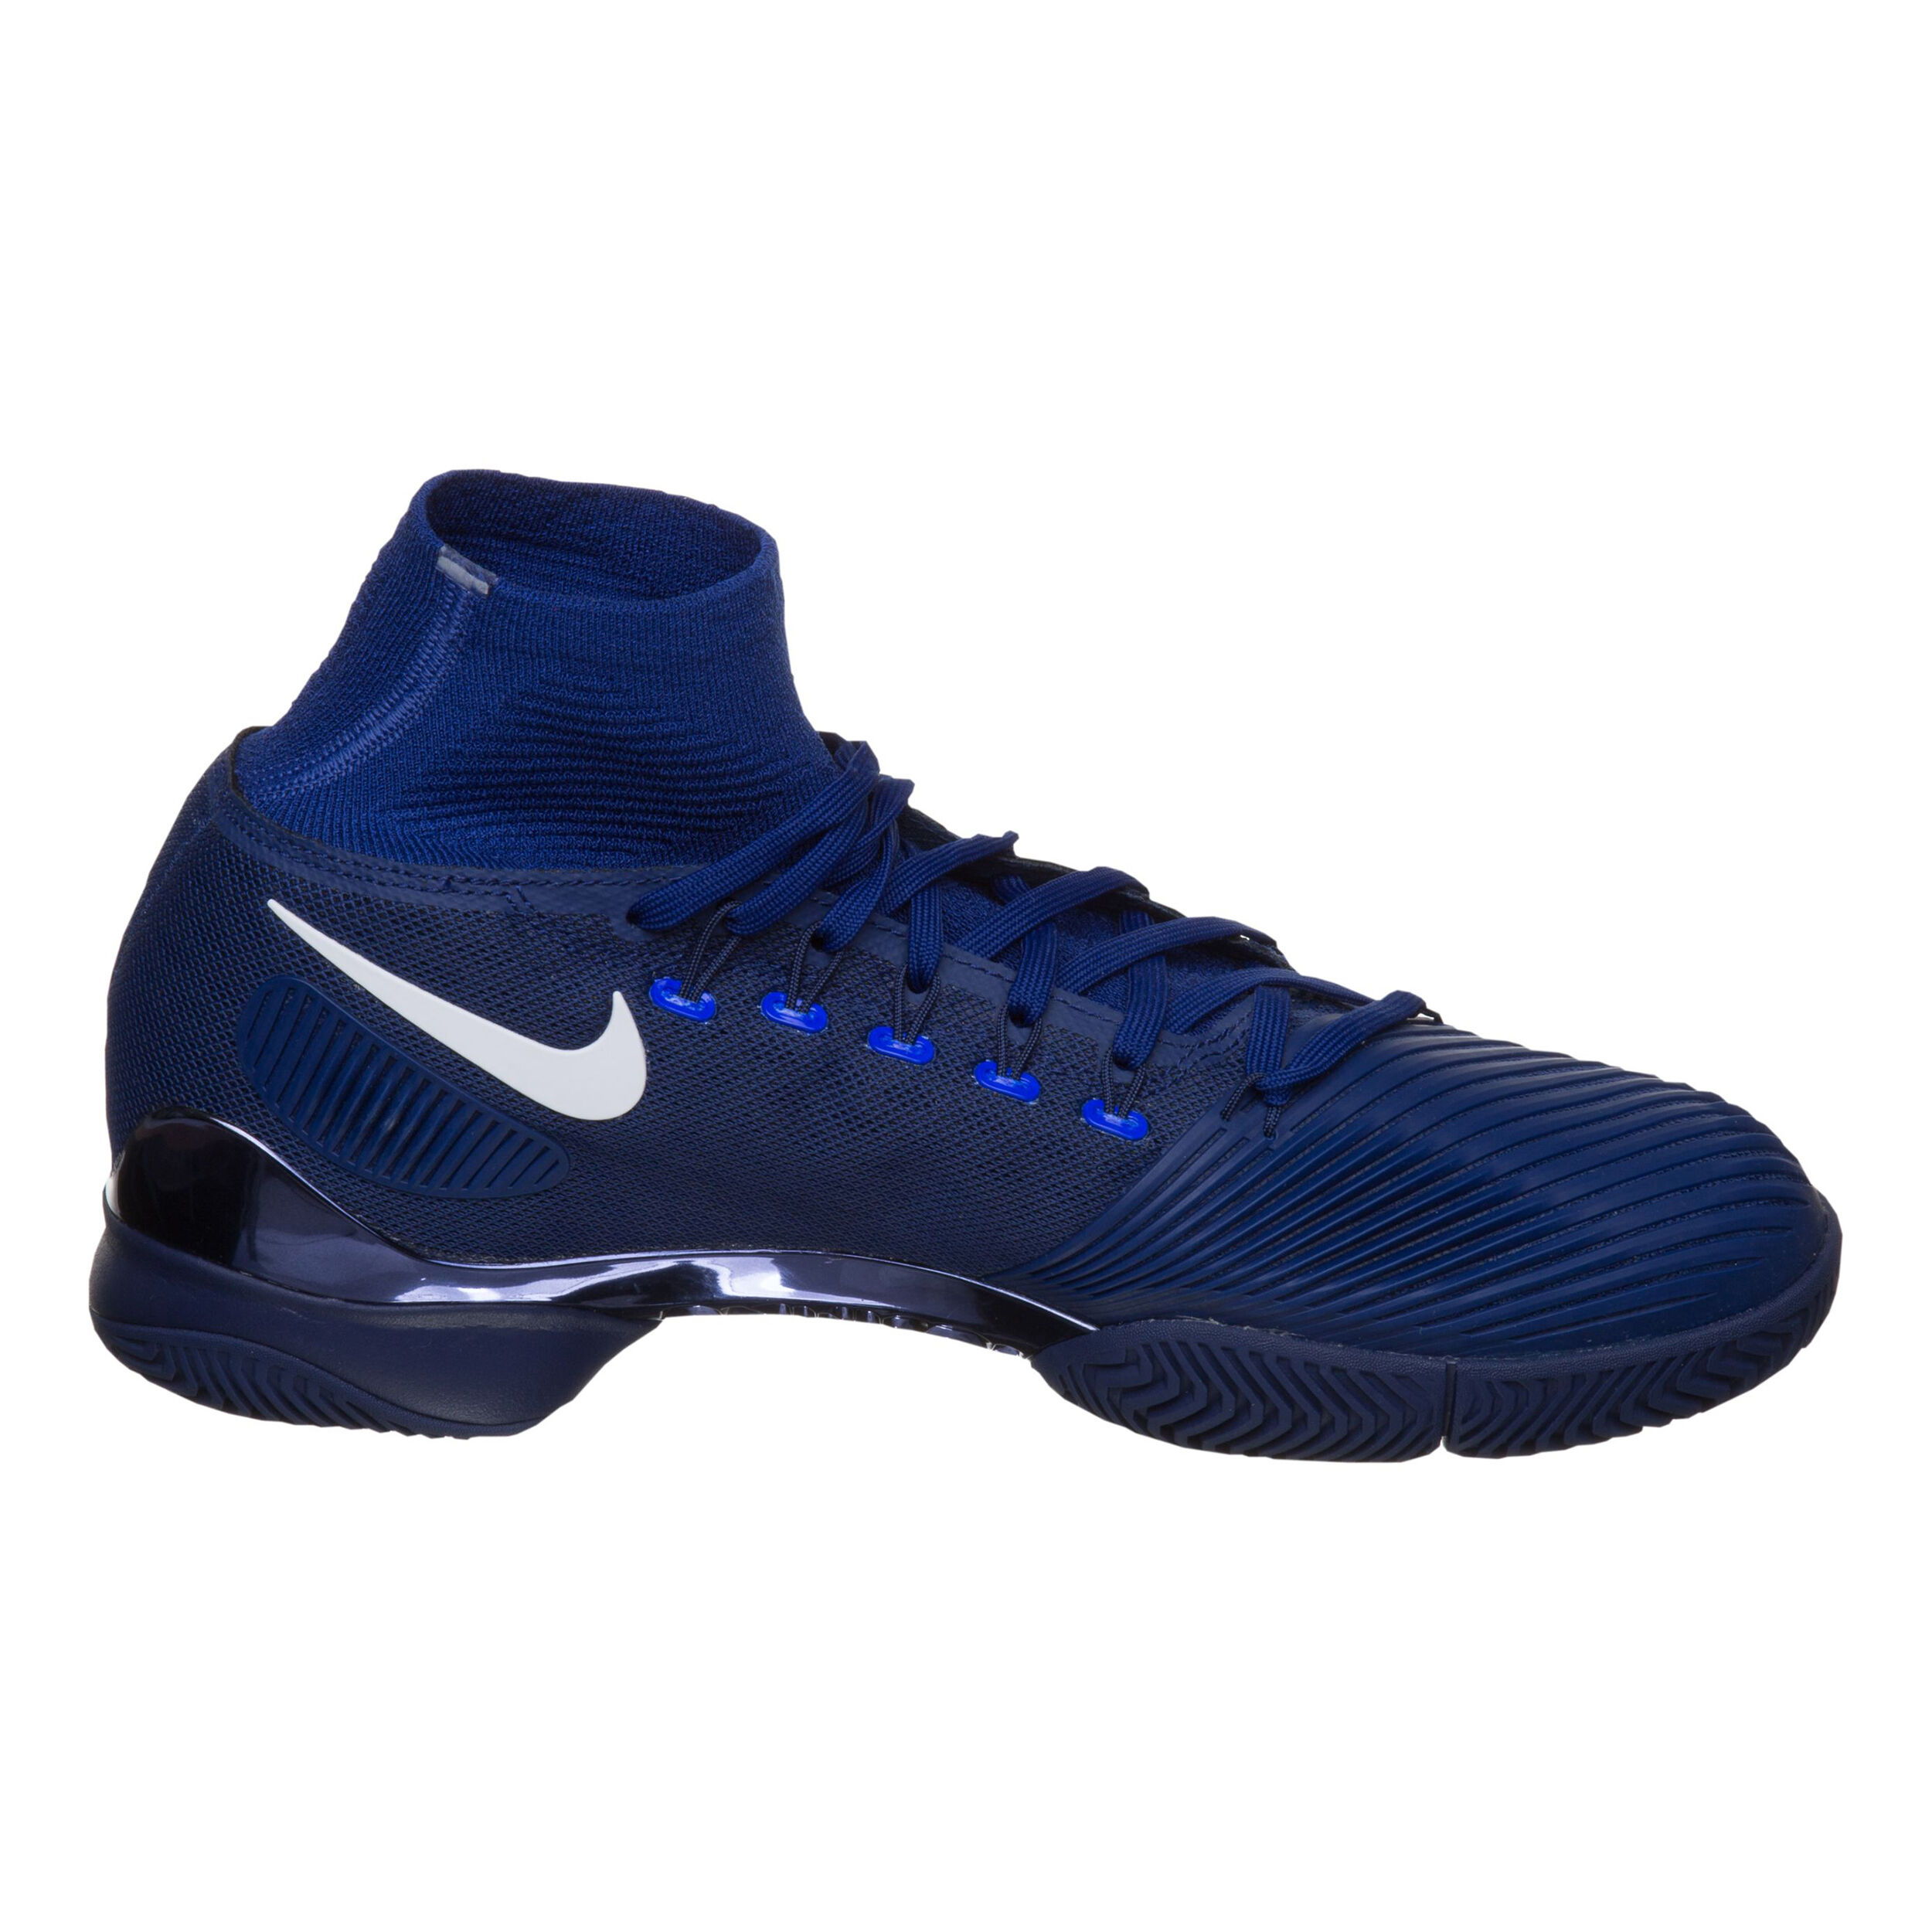 Nike Air Zoom Ultrafly Chaussures Toutes Surfaces Hommes